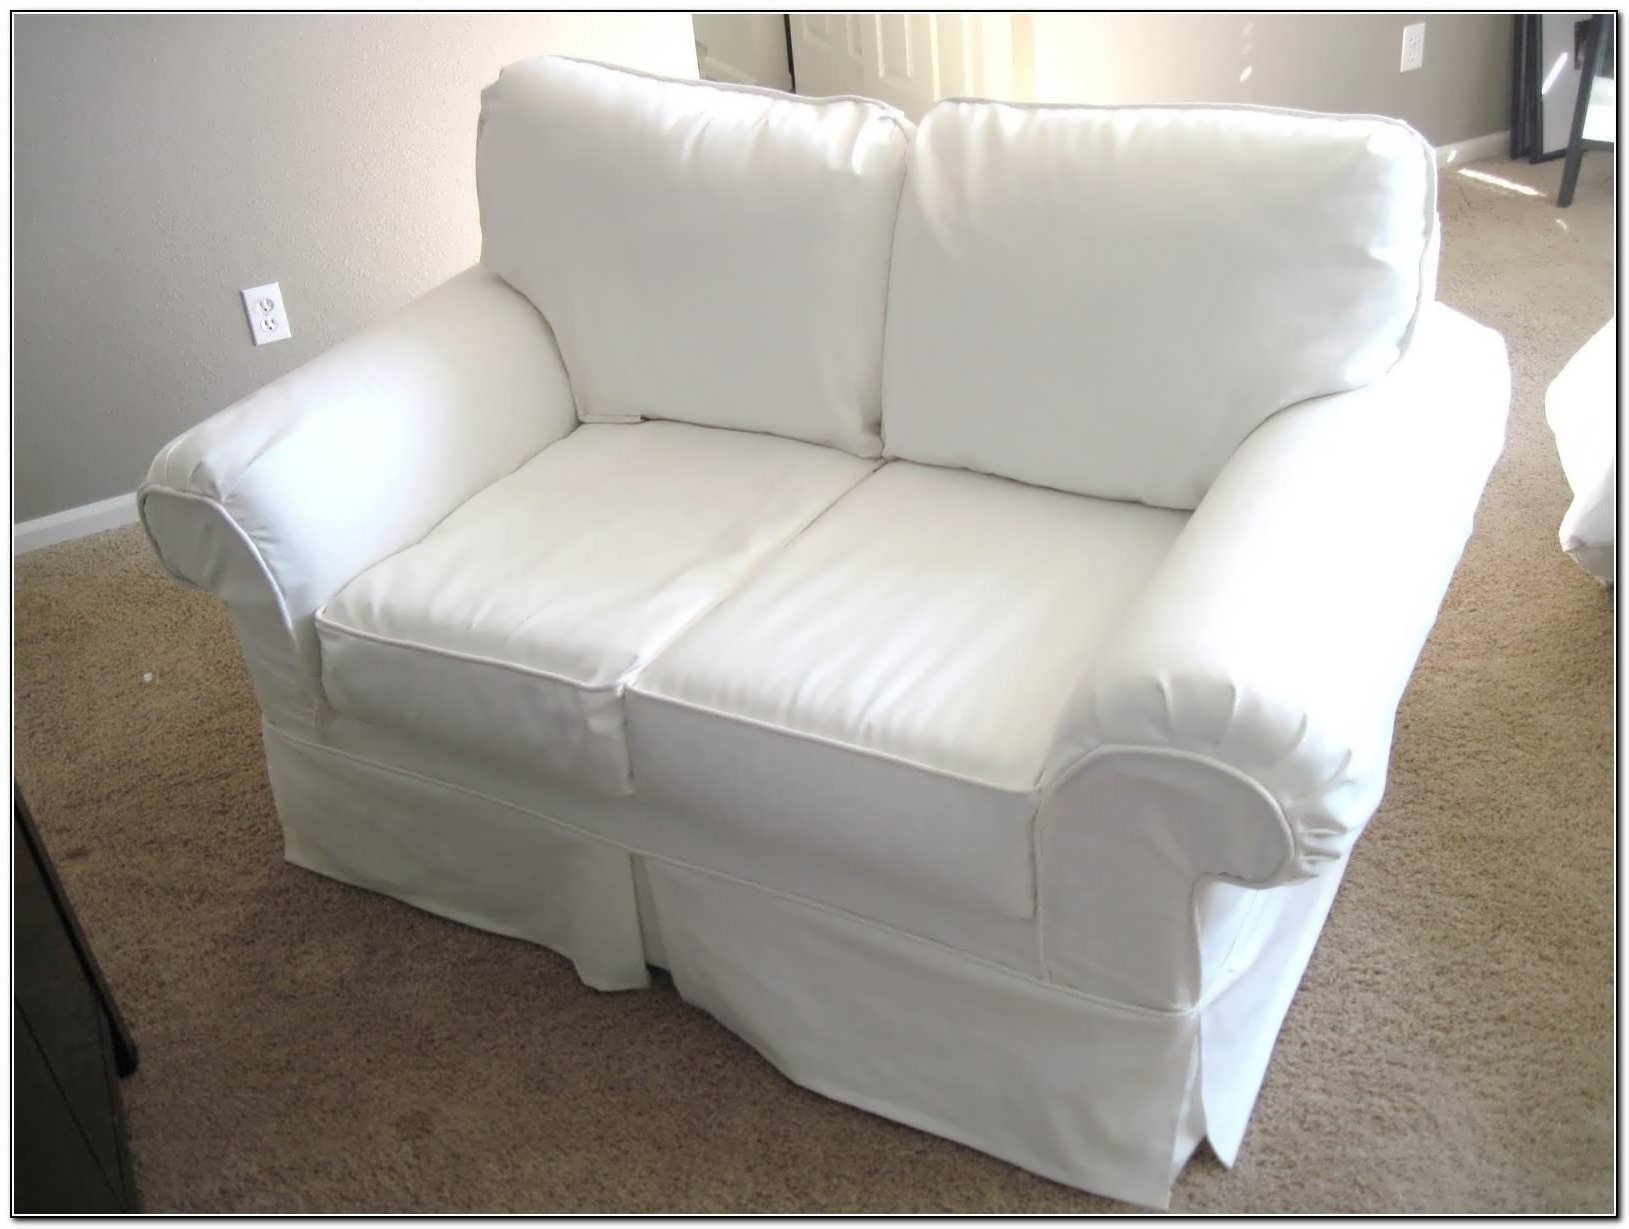 Preferred Furniture: Walmart Couch Covers (View 10 of 15)